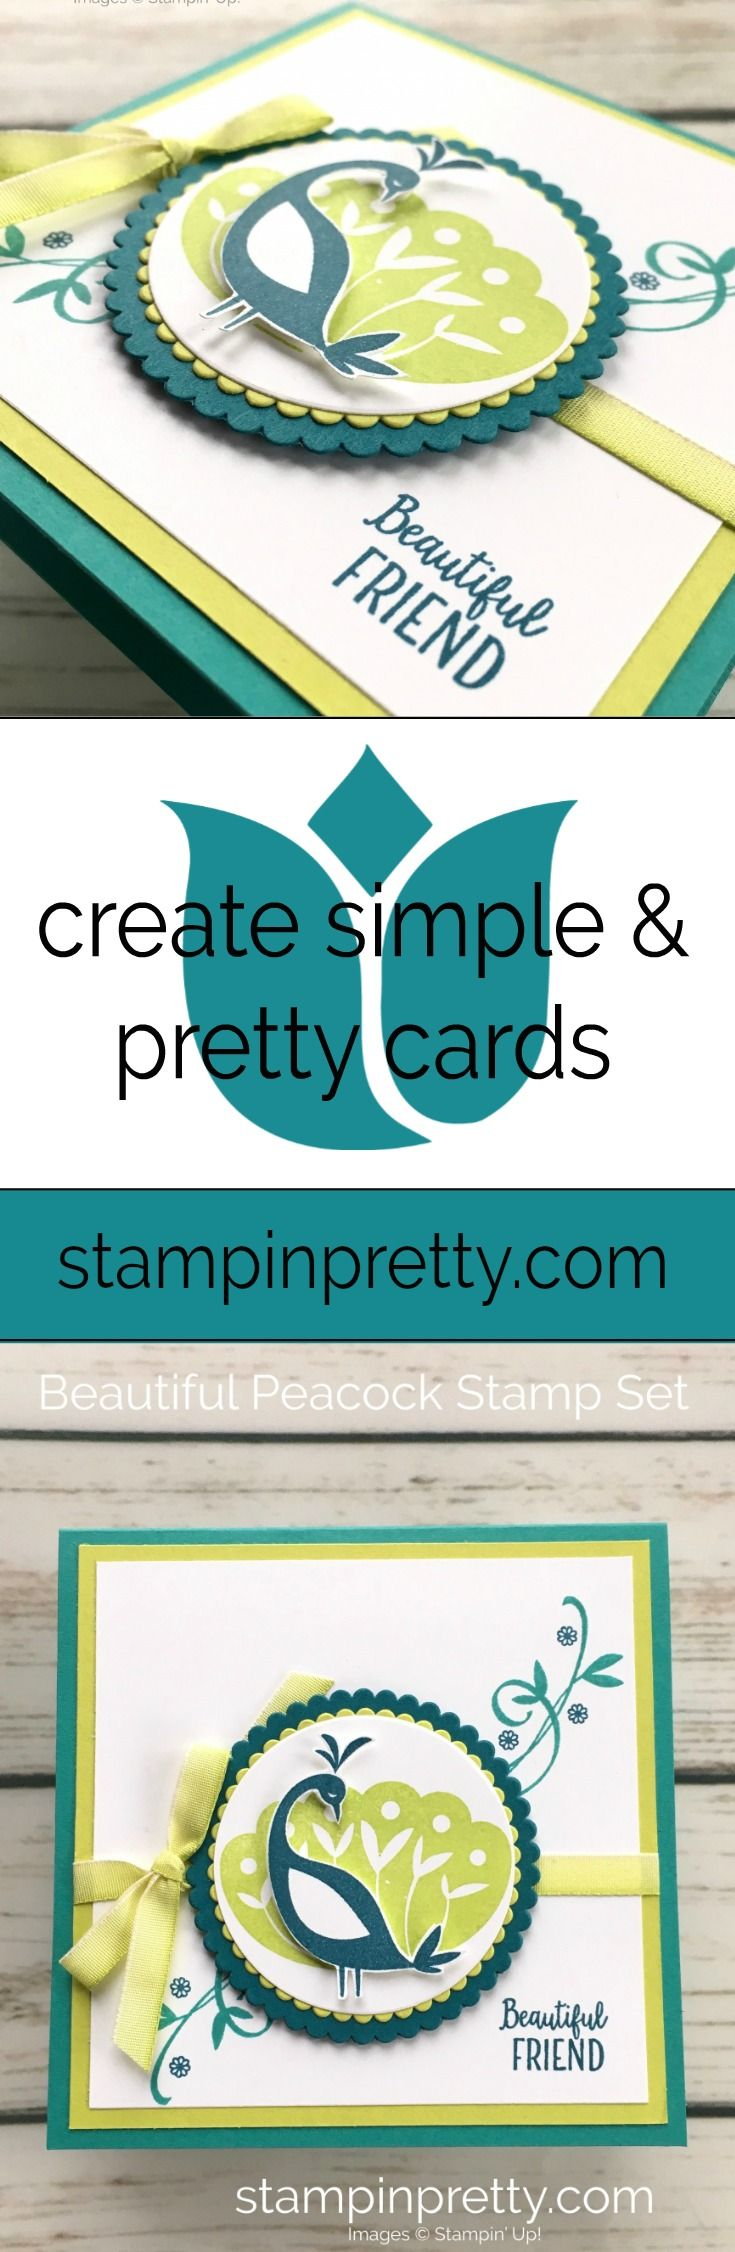 Learn how to create this simple friend card using Stampin Up Beautiful Peacock Stamp Set - Mary Fish StampinUp Card Ideas #maryfish #stampinpretty #beautifulpeacock